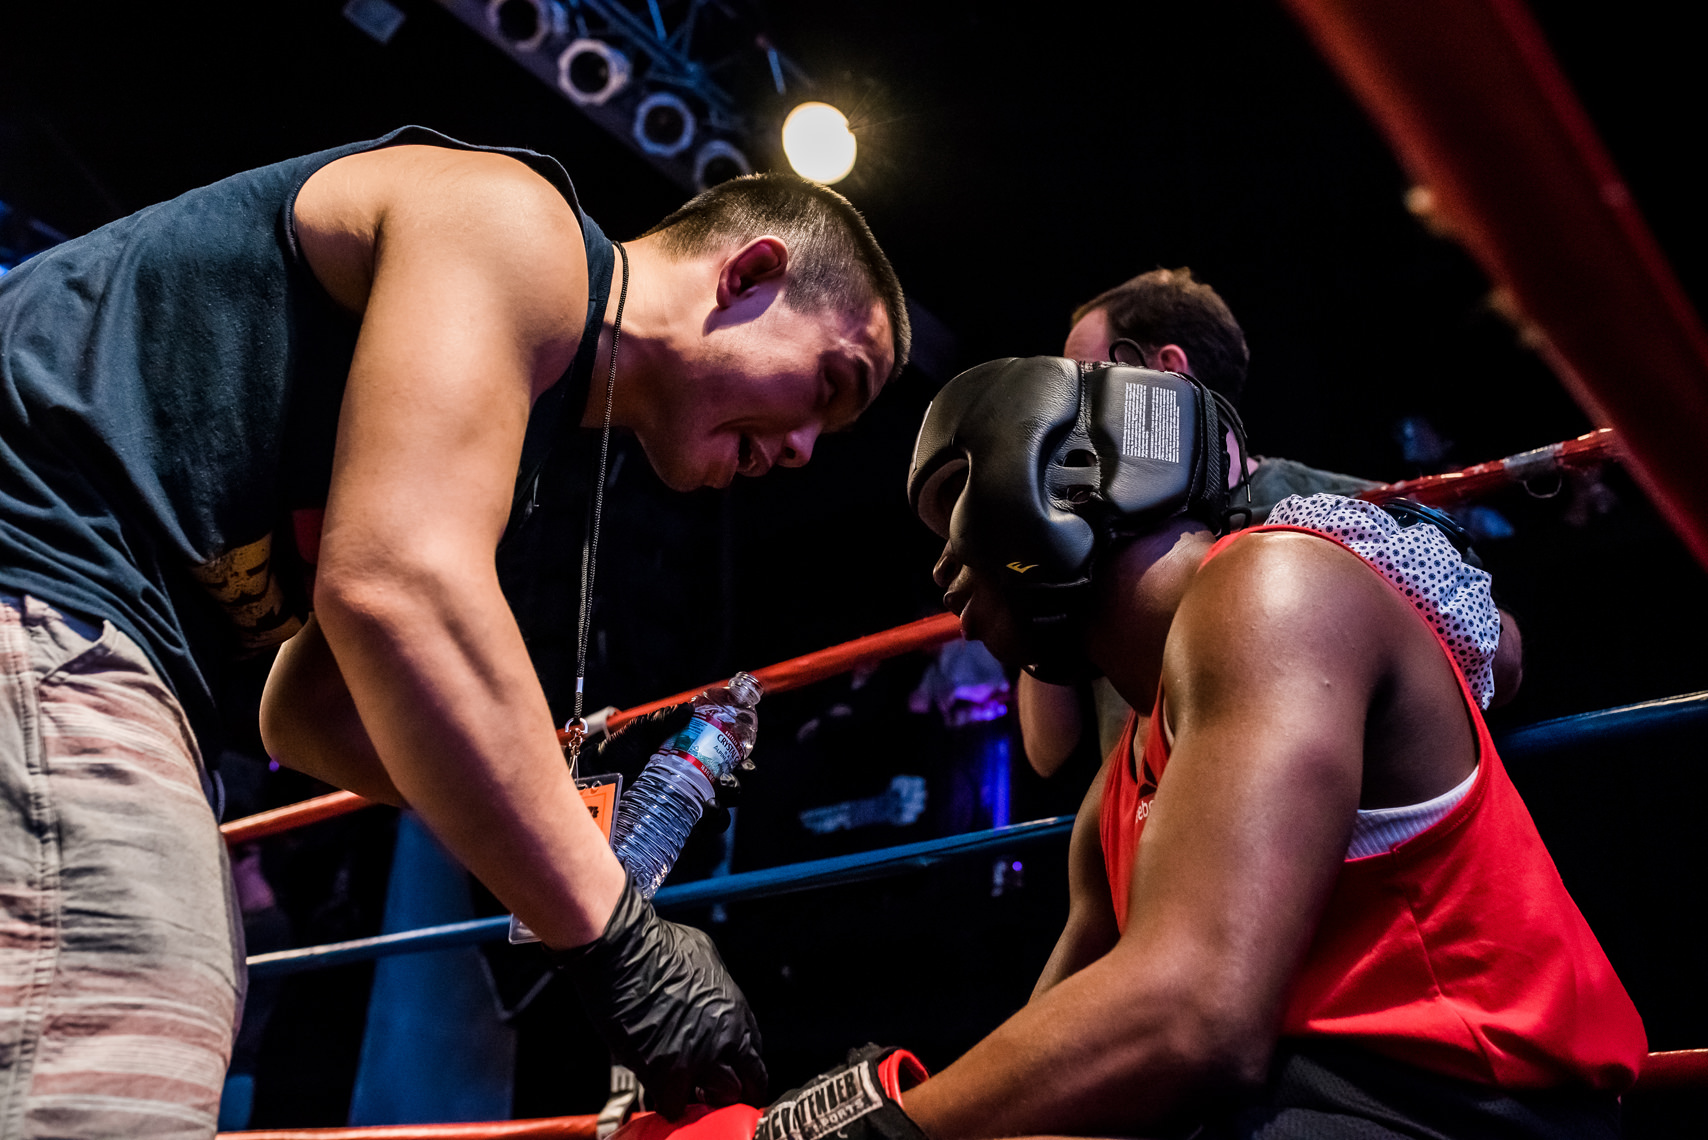 boston-commercial-photographer-athletes-boxers-everybody-fights-nicole-chan-studios-028